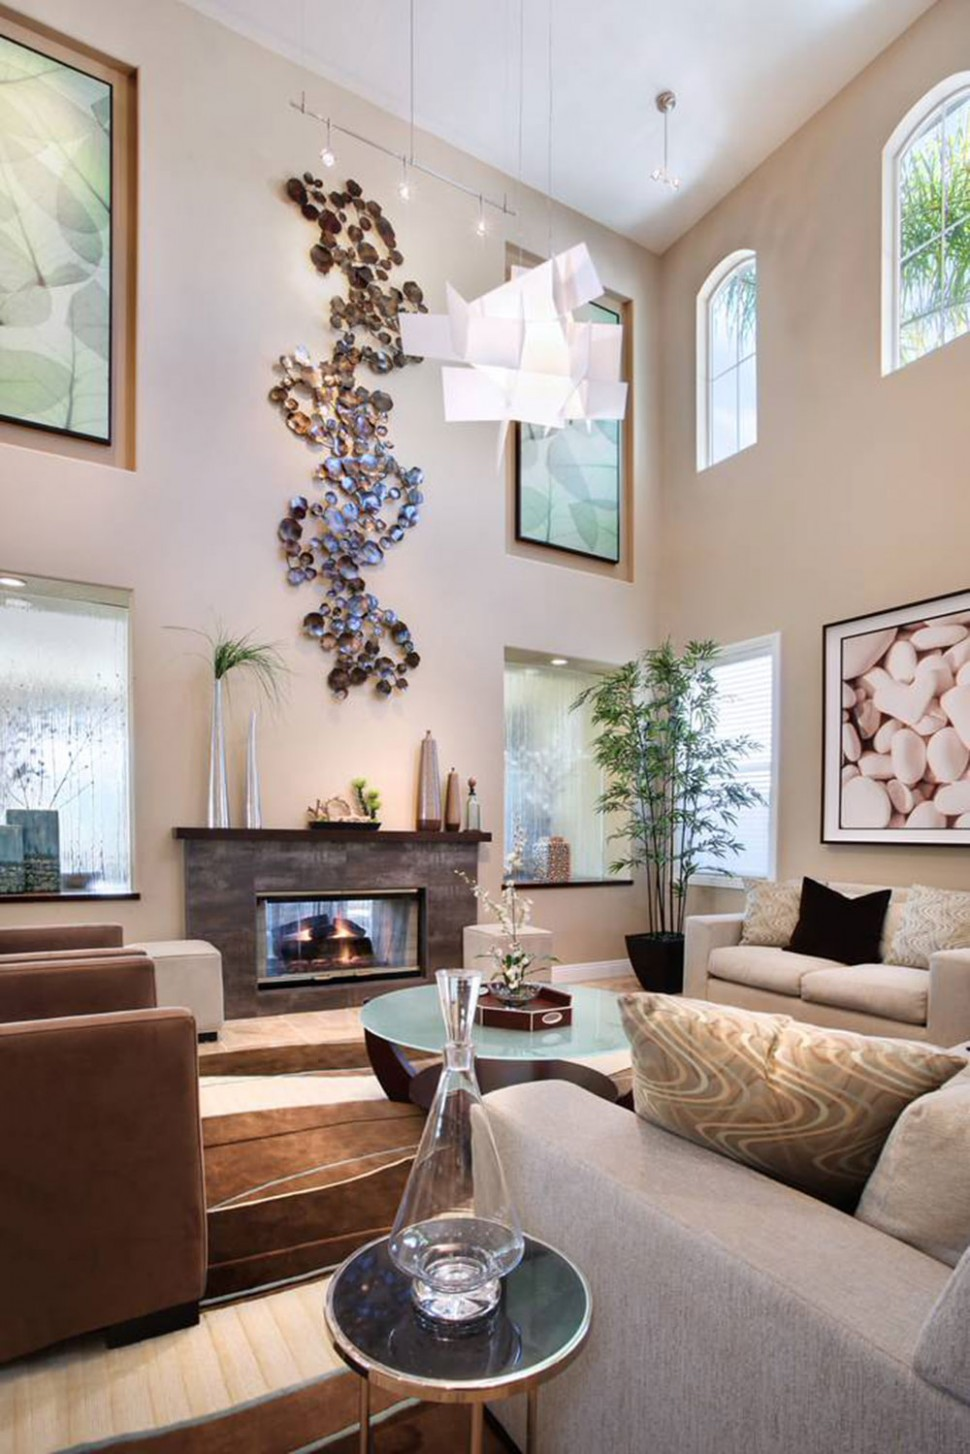 High Ceiling Rooms And Decorating Ideas For Them - Bedroom Ideas High Ceilings